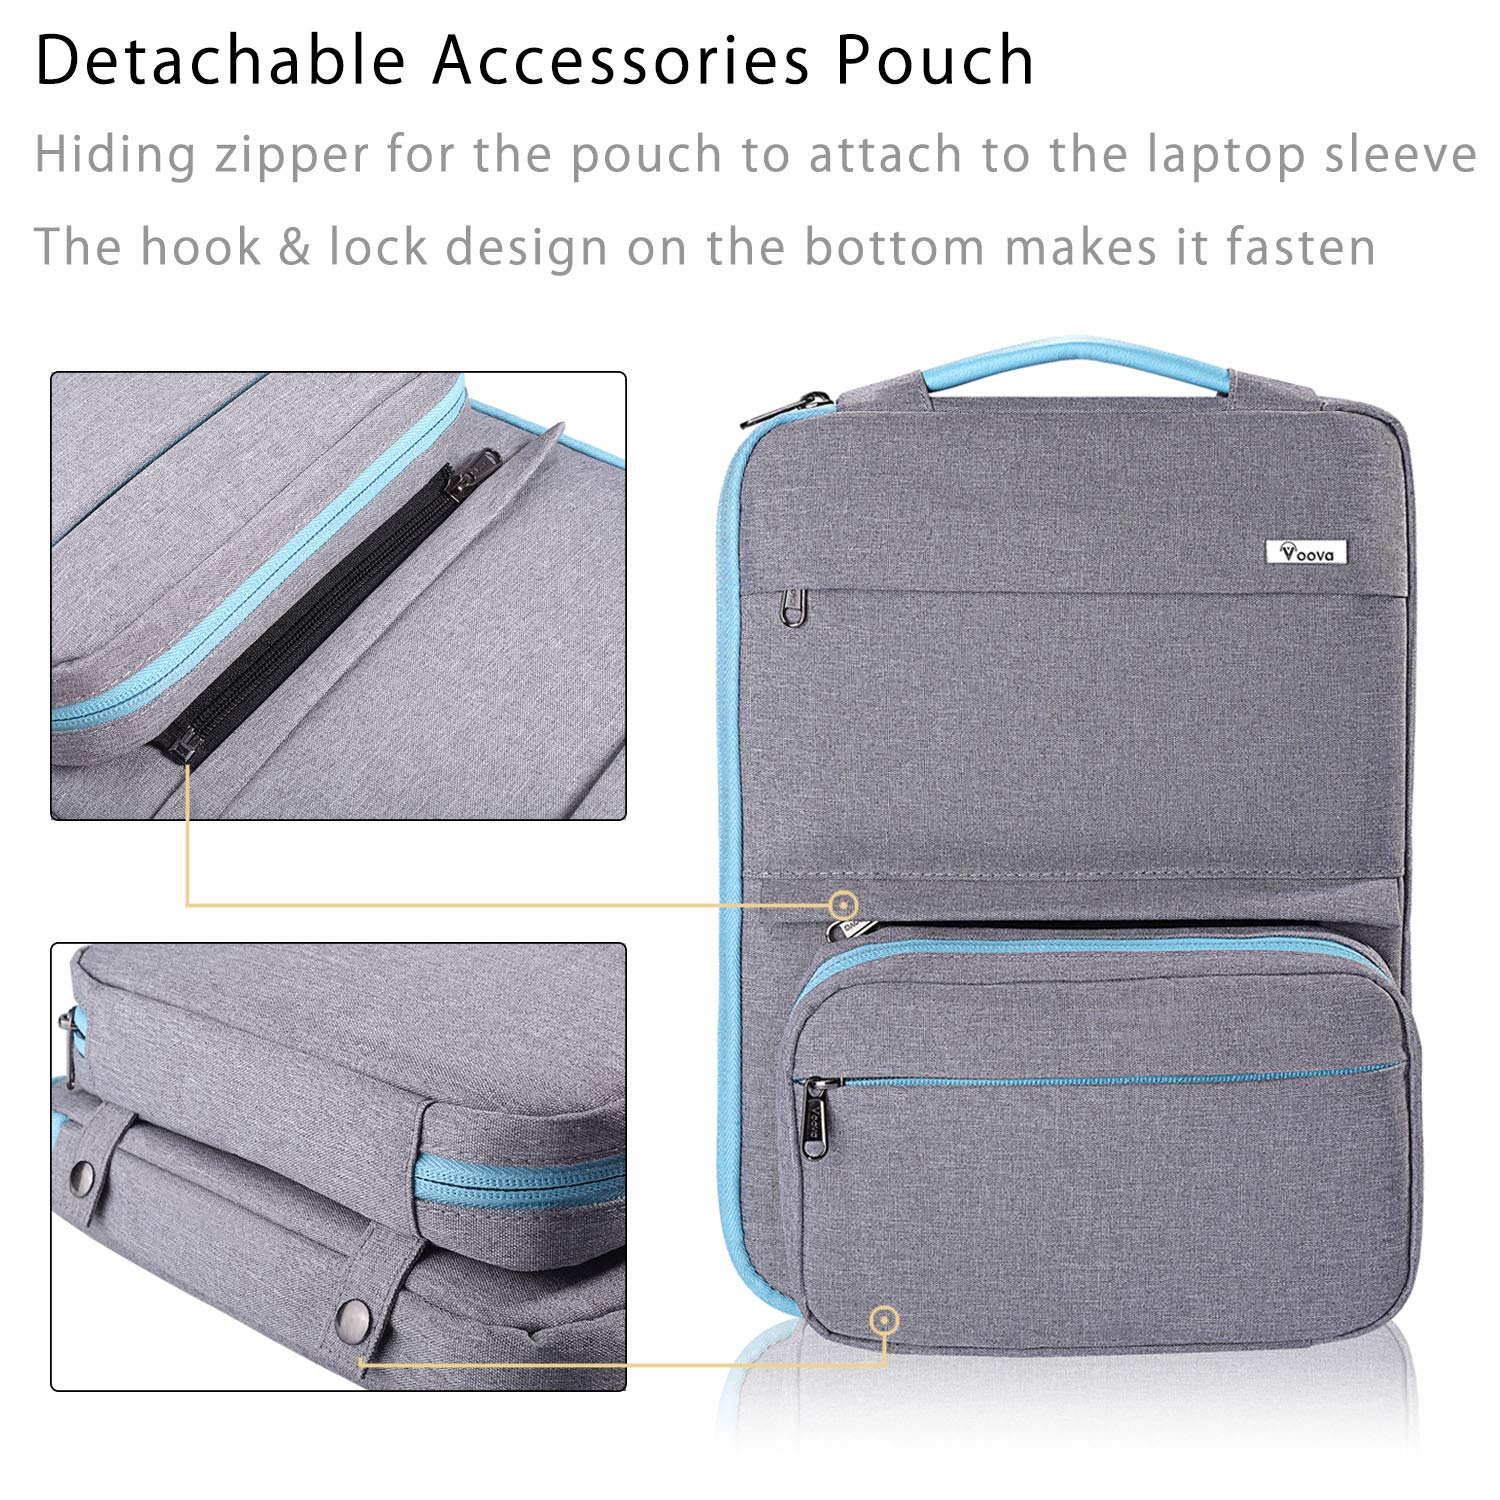 Acer HP Asus Voova 14-15.6 Inch Laptop Sleeve Bag Cover Special Design Waterproof Computer Protective Carry Case with Detachable Accessory Pocket Compatible with MacBook Pro Retina 15 Dark Gray